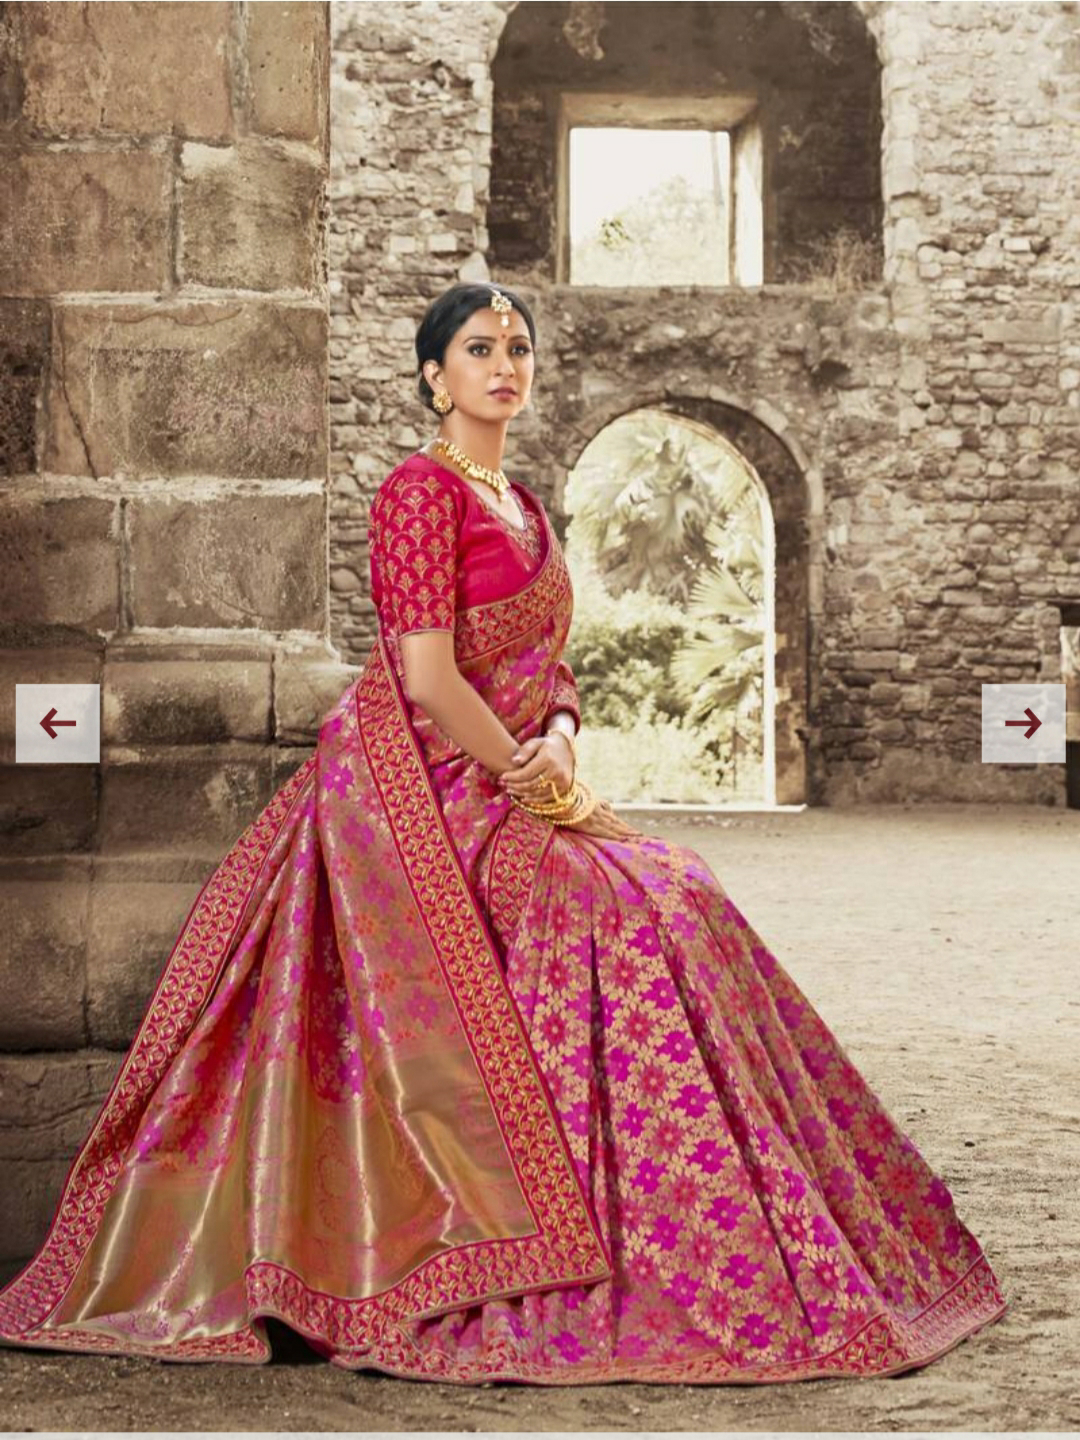 MIRRAW-  WHERE ONE CAN GET ALL TRADITIONAL INDIAN CLOTHING LIKE SAREES, SALWAR SUITS, LEHENGA,SHERWANI AND MORE ON ONE PLACE image